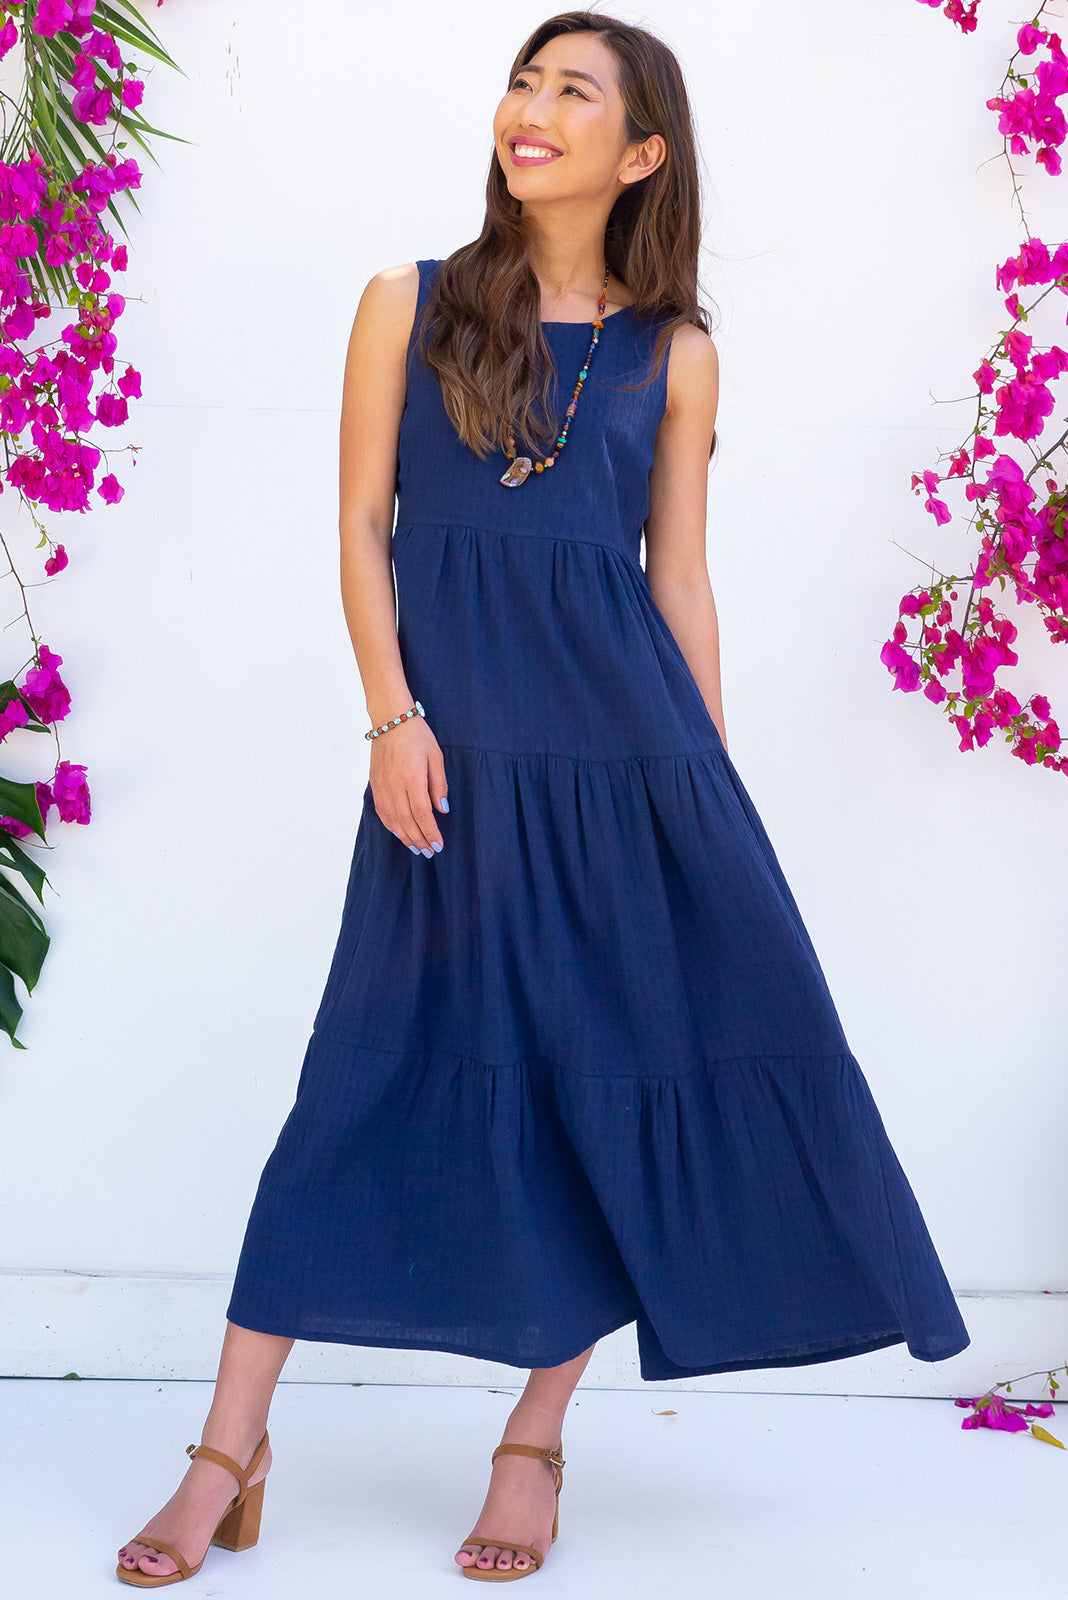 The Goldie Inky Navy Midi Dress is made from 100% cotton and features a tiered skirt and side pockets.